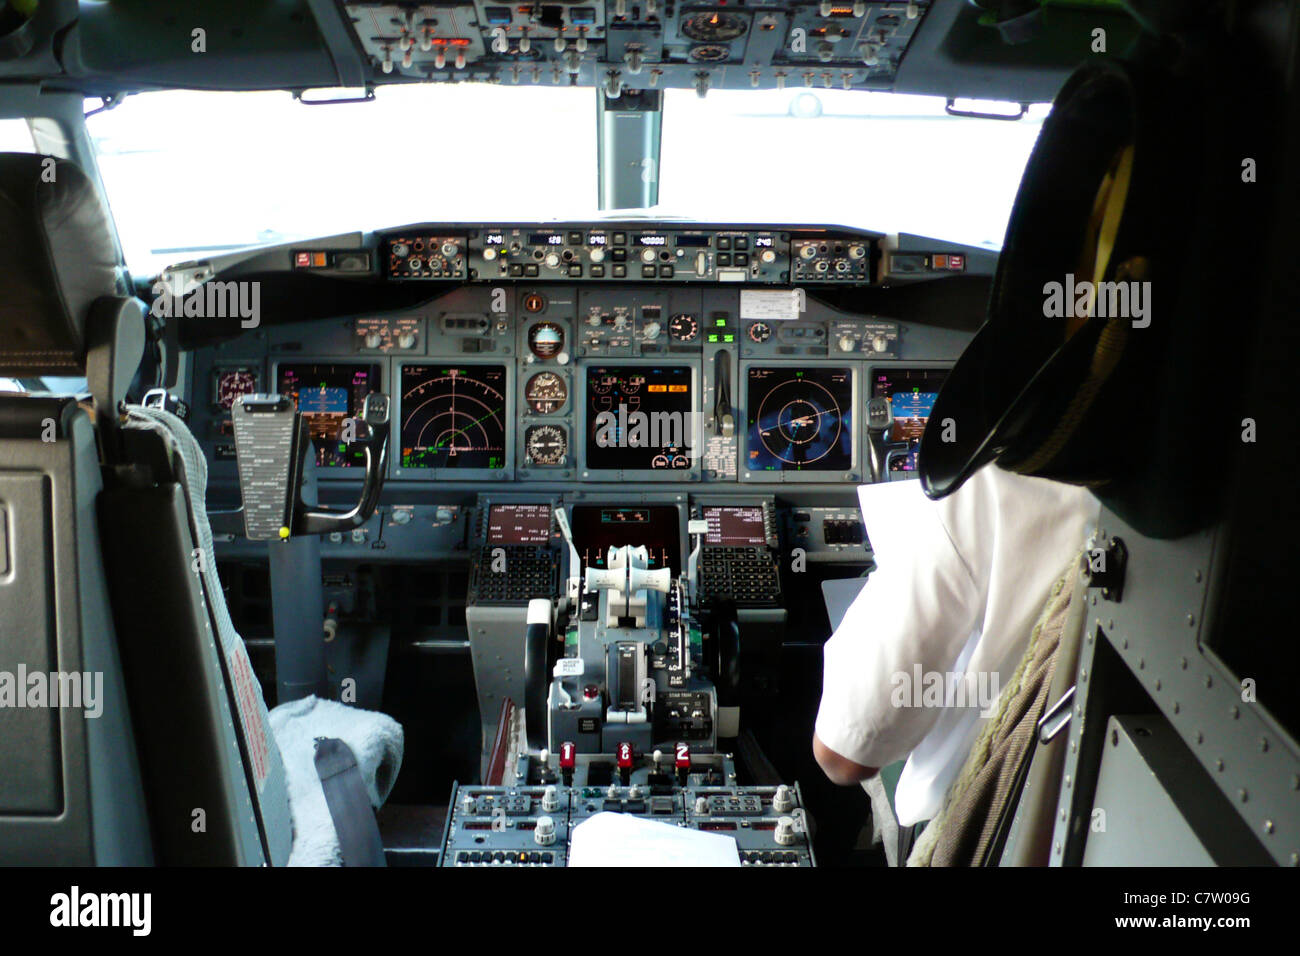 Boeing 737 aircraft cockpit and instrument panel of Stock